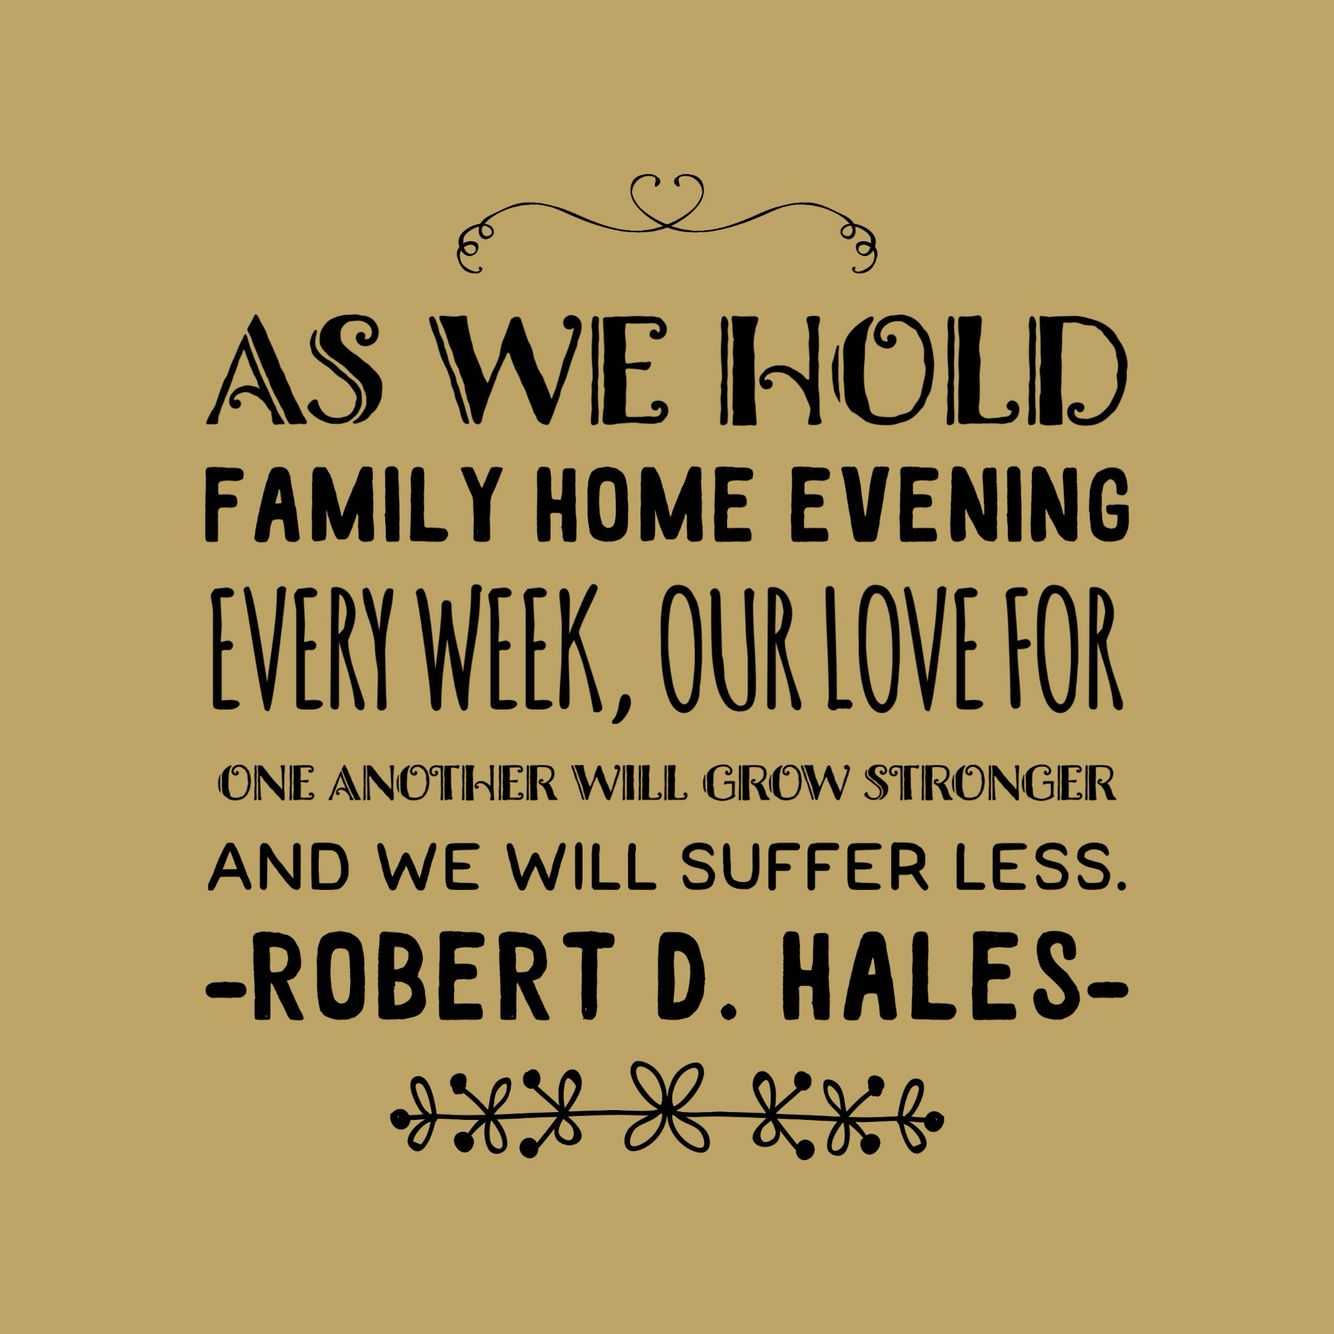 oct as we hold family home evening every week our love for